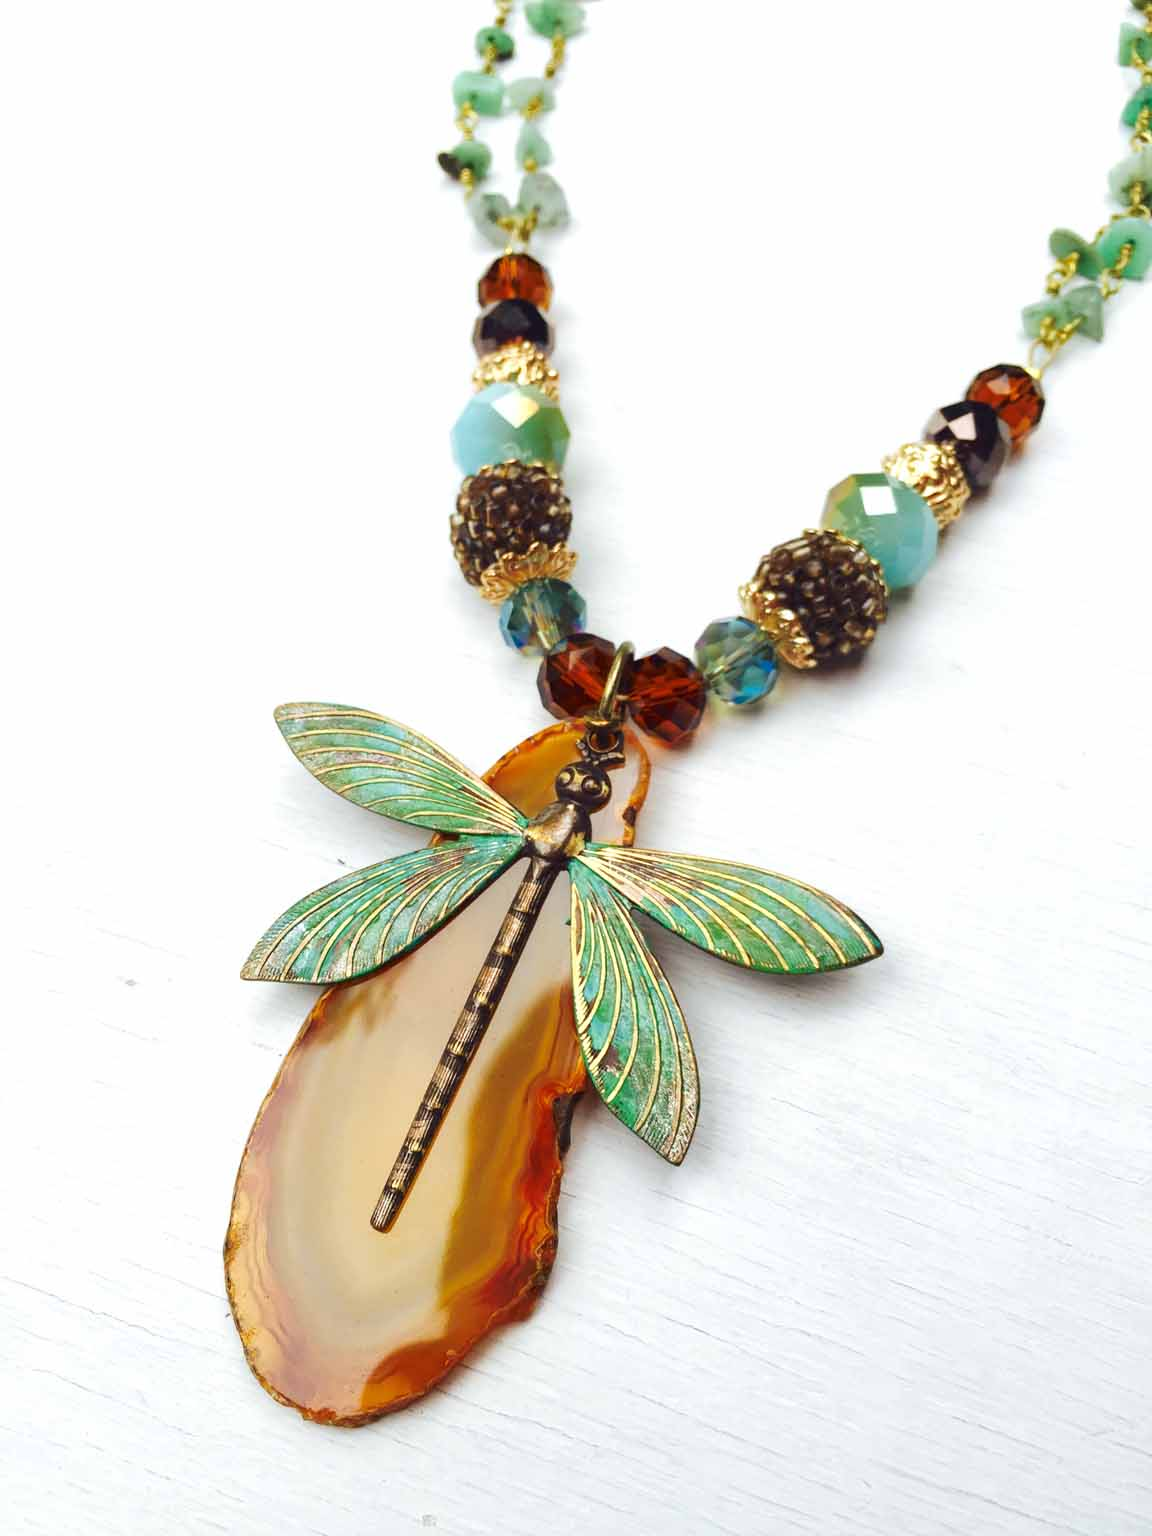 An image of Candie's Painted Patina Dragonfly Necklace.